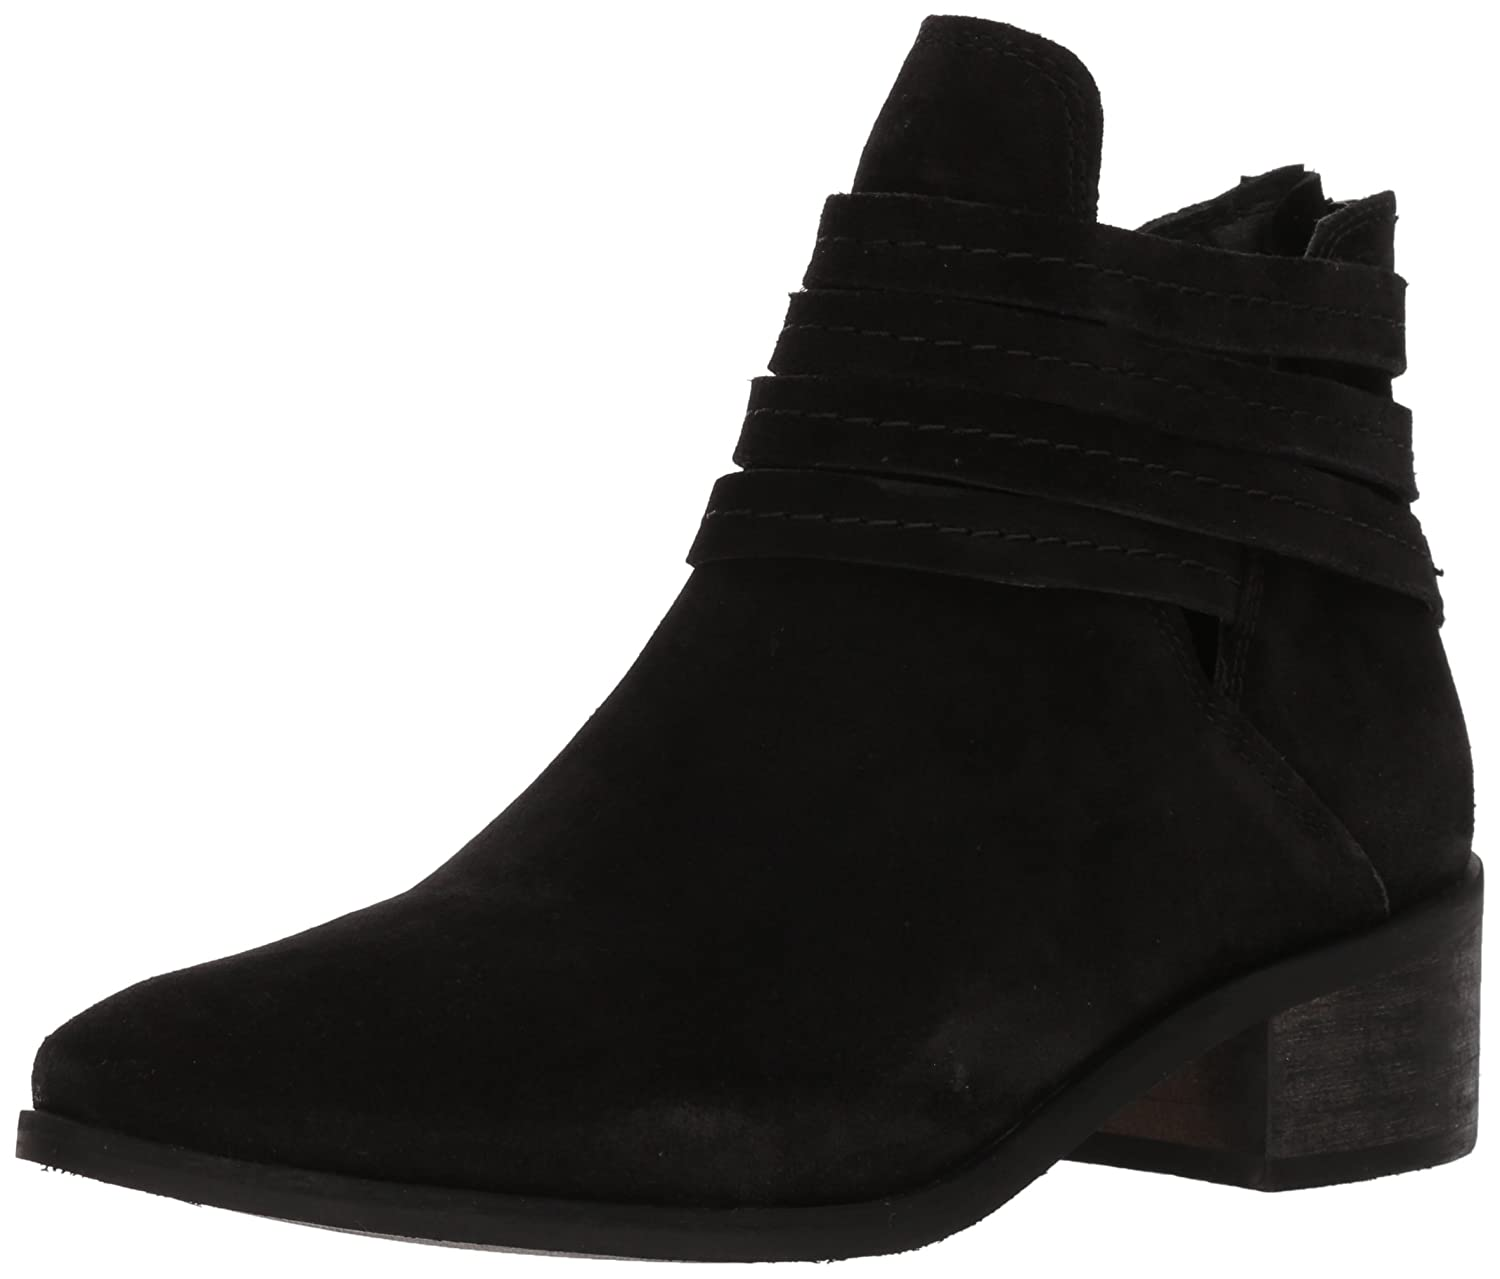 Coconuts by Matisse Women's Casablanca Ankle Boot B0768TD433 10 B(M) US|Black